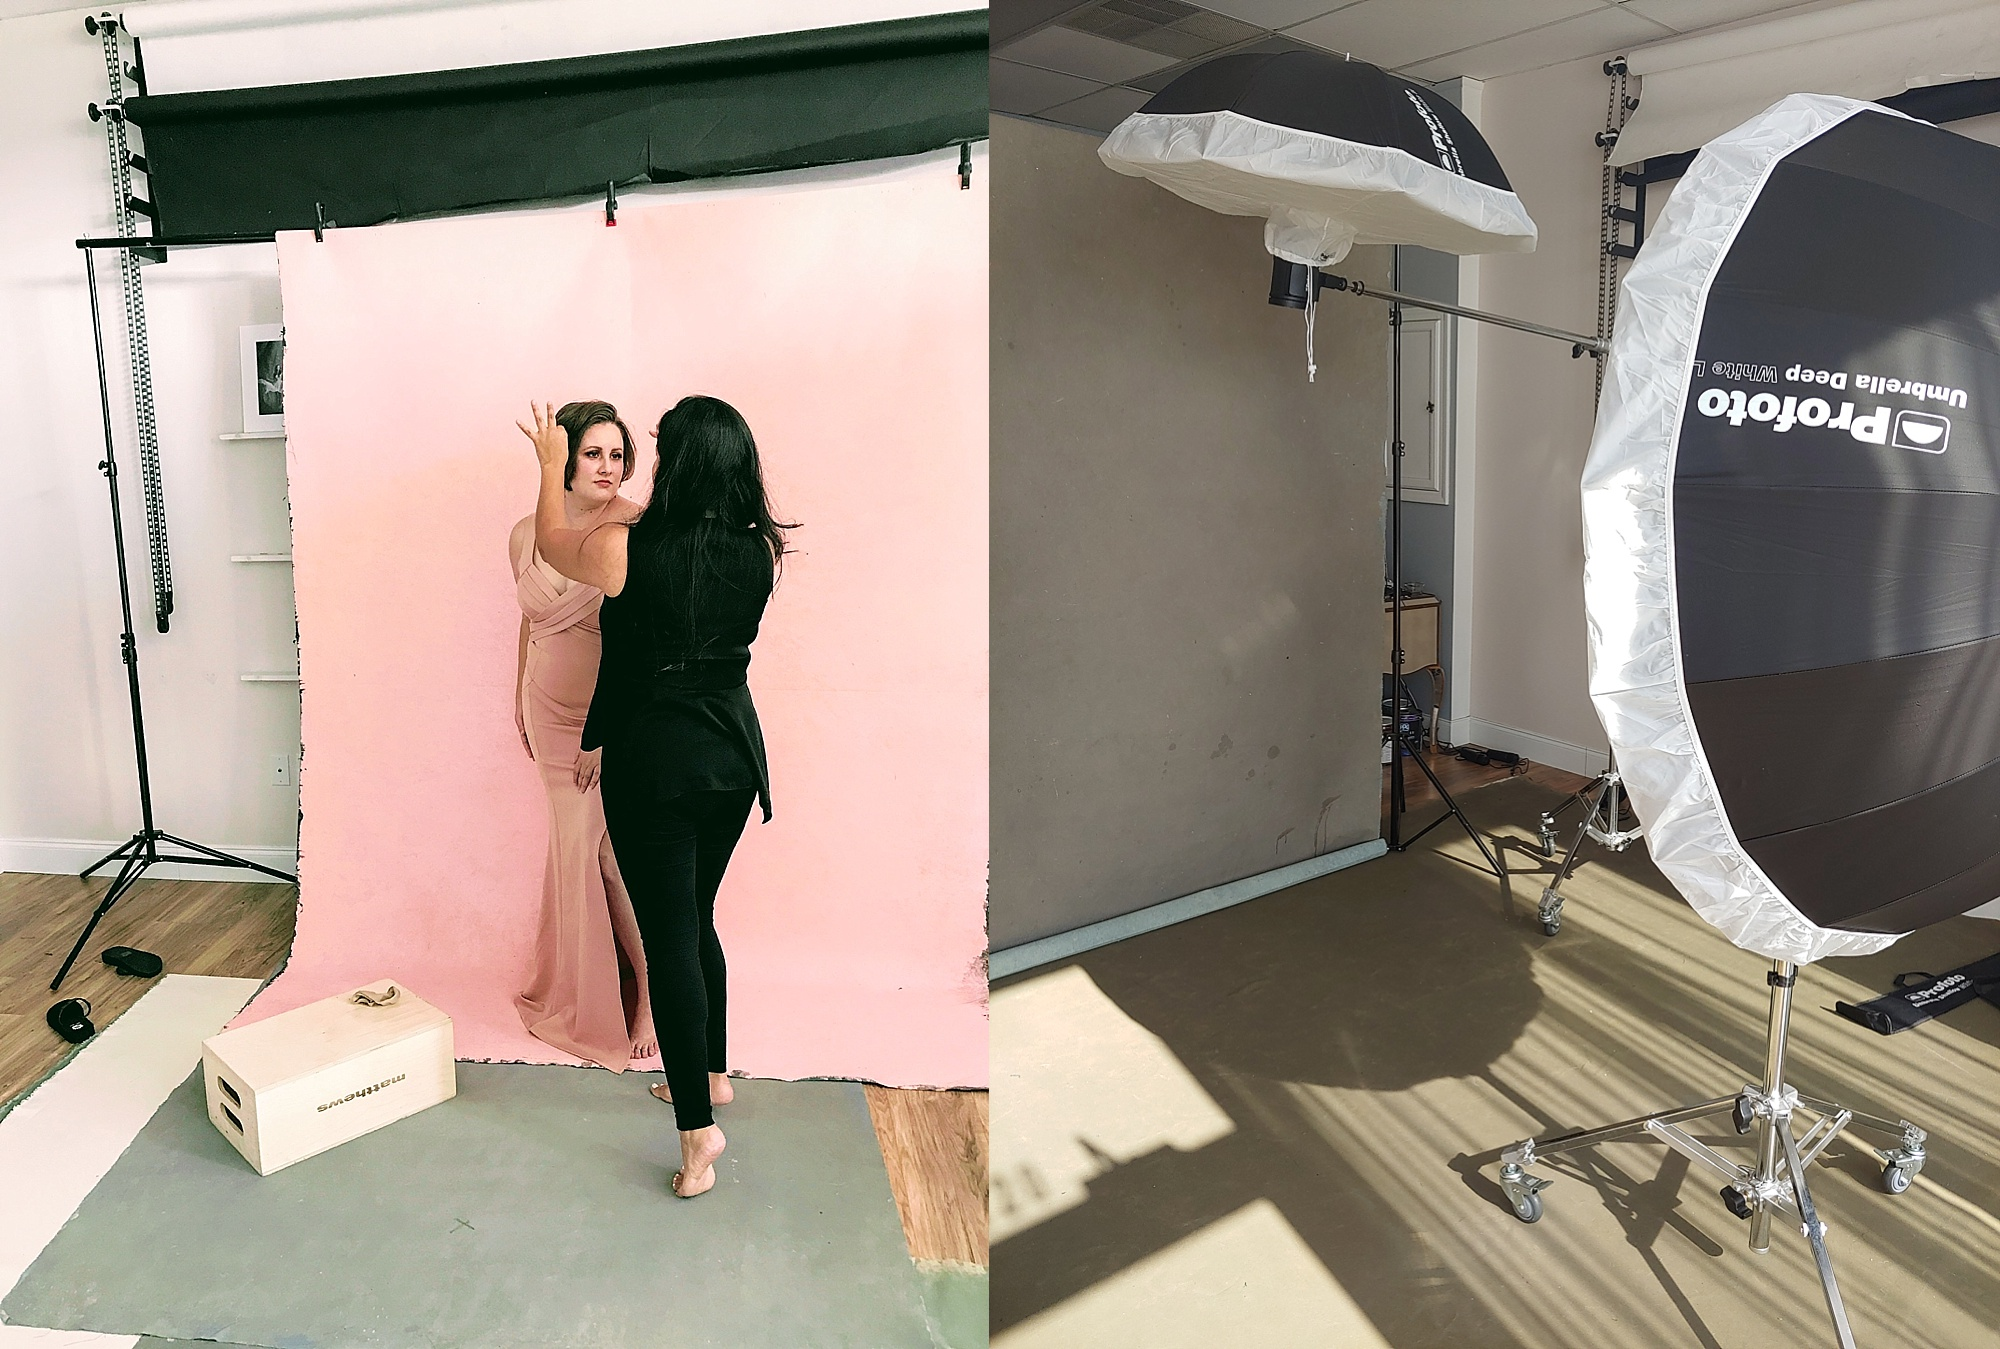 Behind the scenes, photography studio, indoor photography lighting, The Portrait System Podcast, Sue Bryce Education, Photography Business and Marketing, Saray Taylor Roman, Portrait Photographer